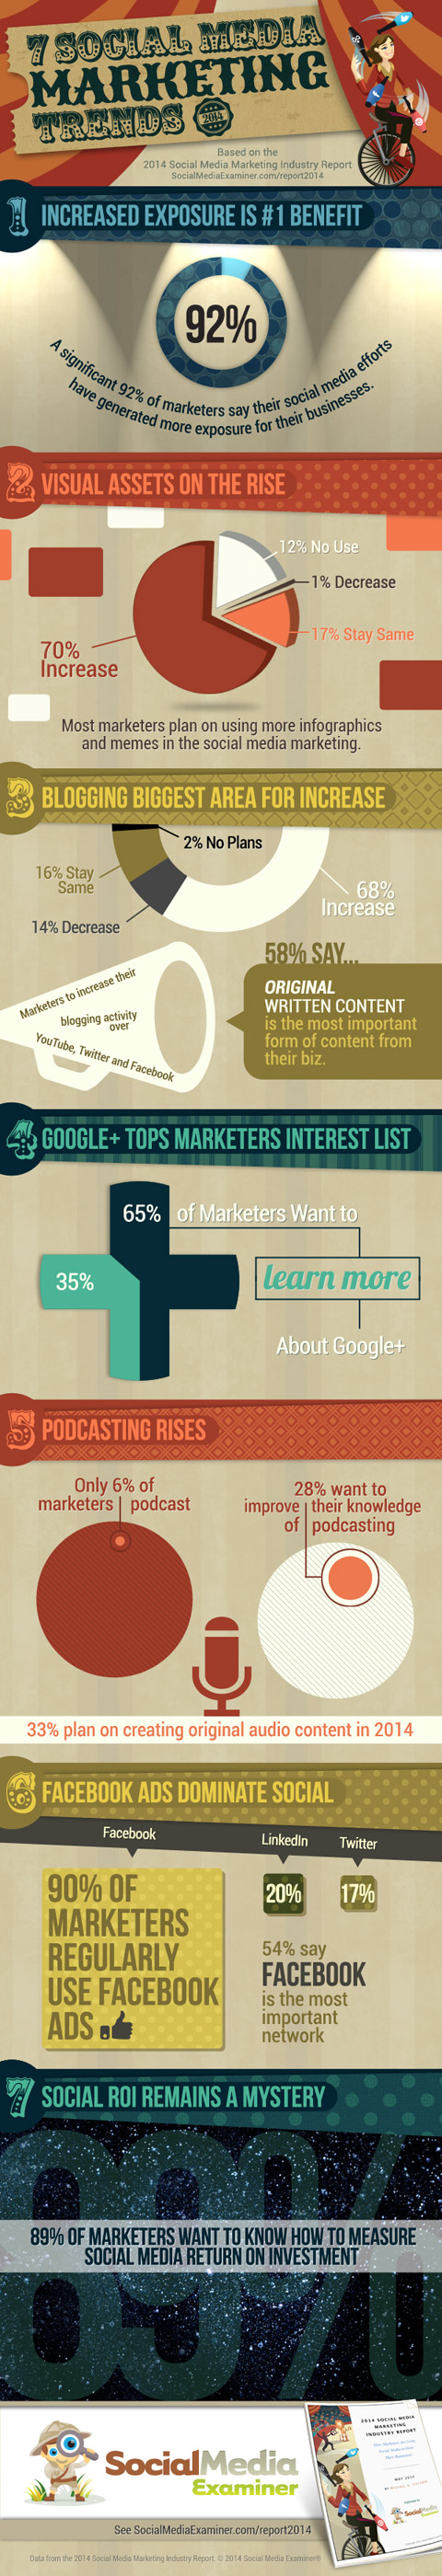 I 7 Social Media marketing Trends, in una infografica